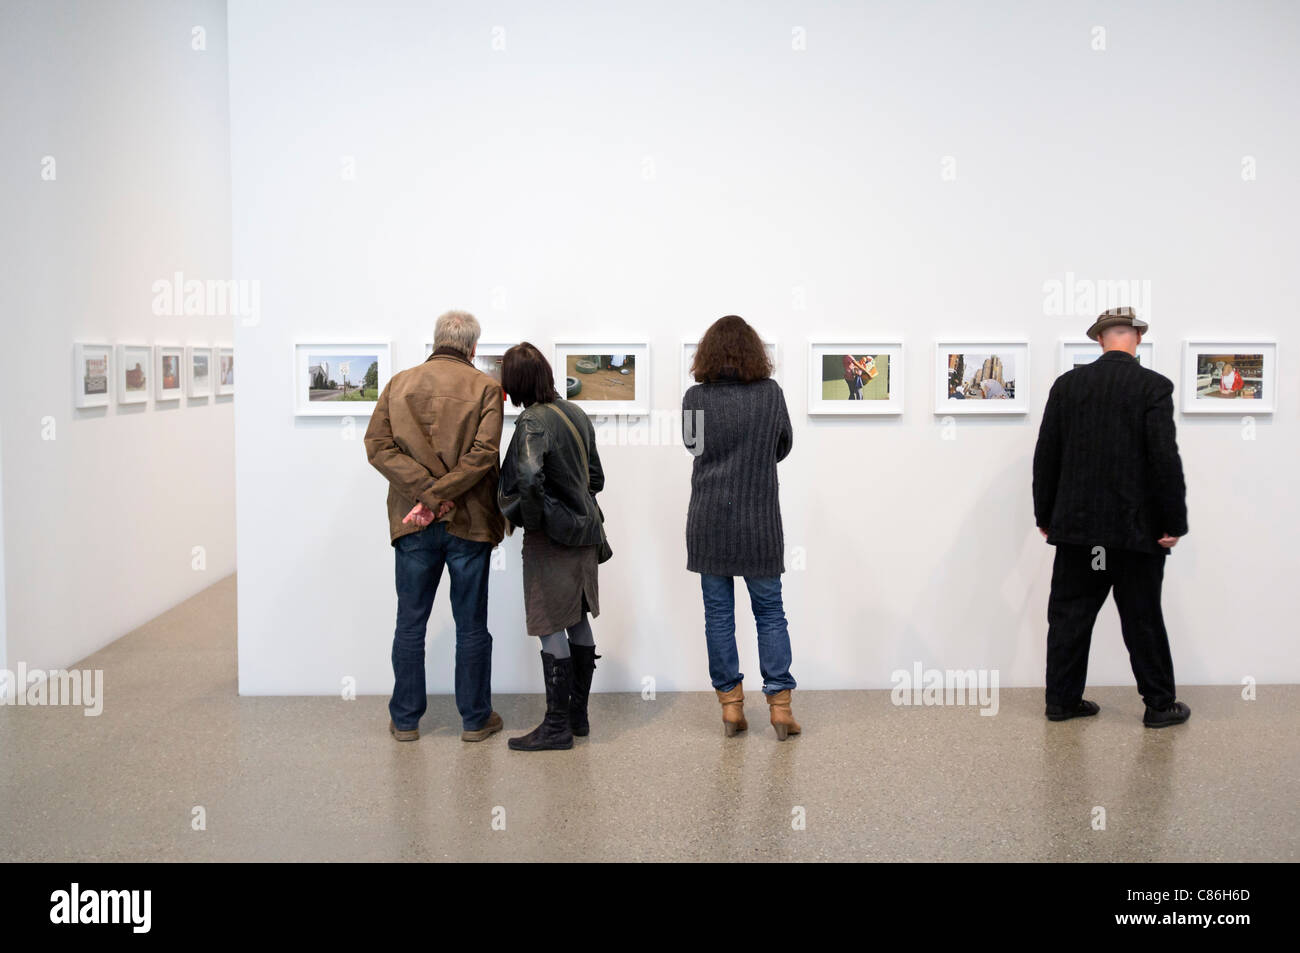 Exhibition of photography by Joel Sternfeld at Folkwang Museum in Essen Germany - Stock Image